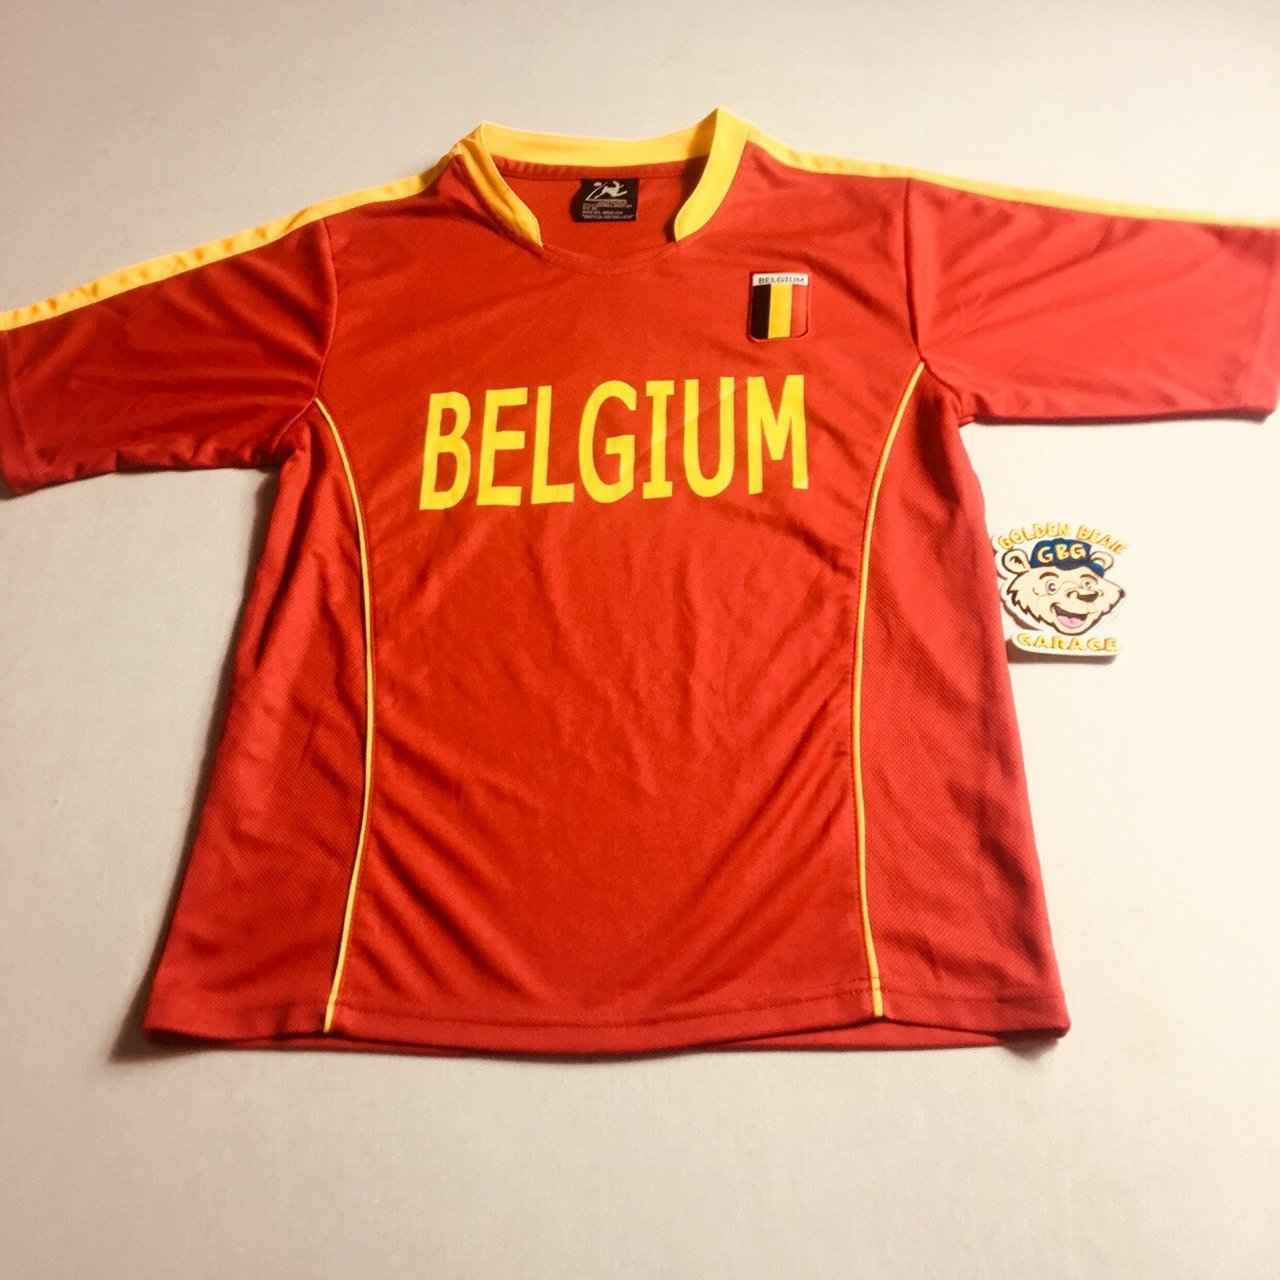 62b8a56f7 Vintage Mens Small Belgium Soccer Jersey. This jersey is in - Depop